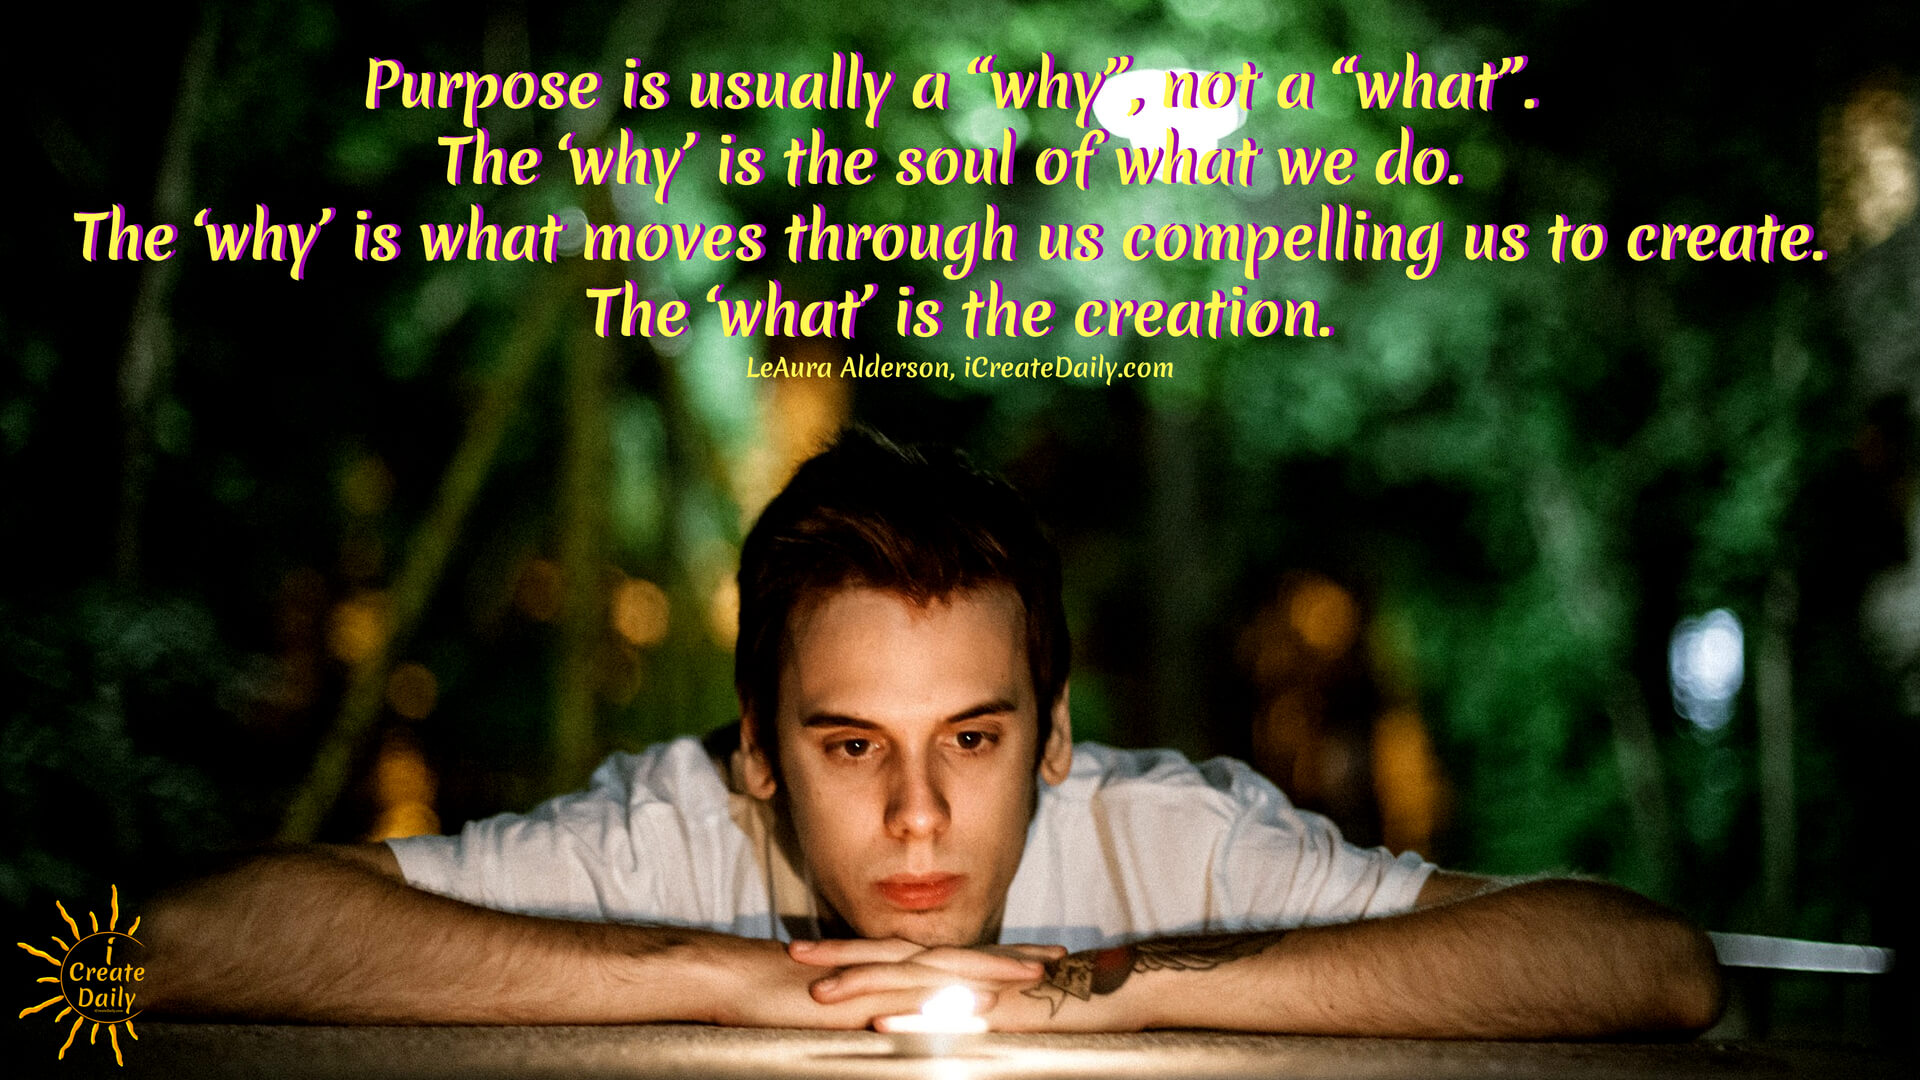 """PURPOSE QUOTE: Purpose is usually a """"why"""", not a """"what"""". The 'why' is the soul of what we do.... #PurposeQuote #BrandIdentity #Branding #YourWhy #WhyNotWhat #iCreateDaily #BrandingQuote"""